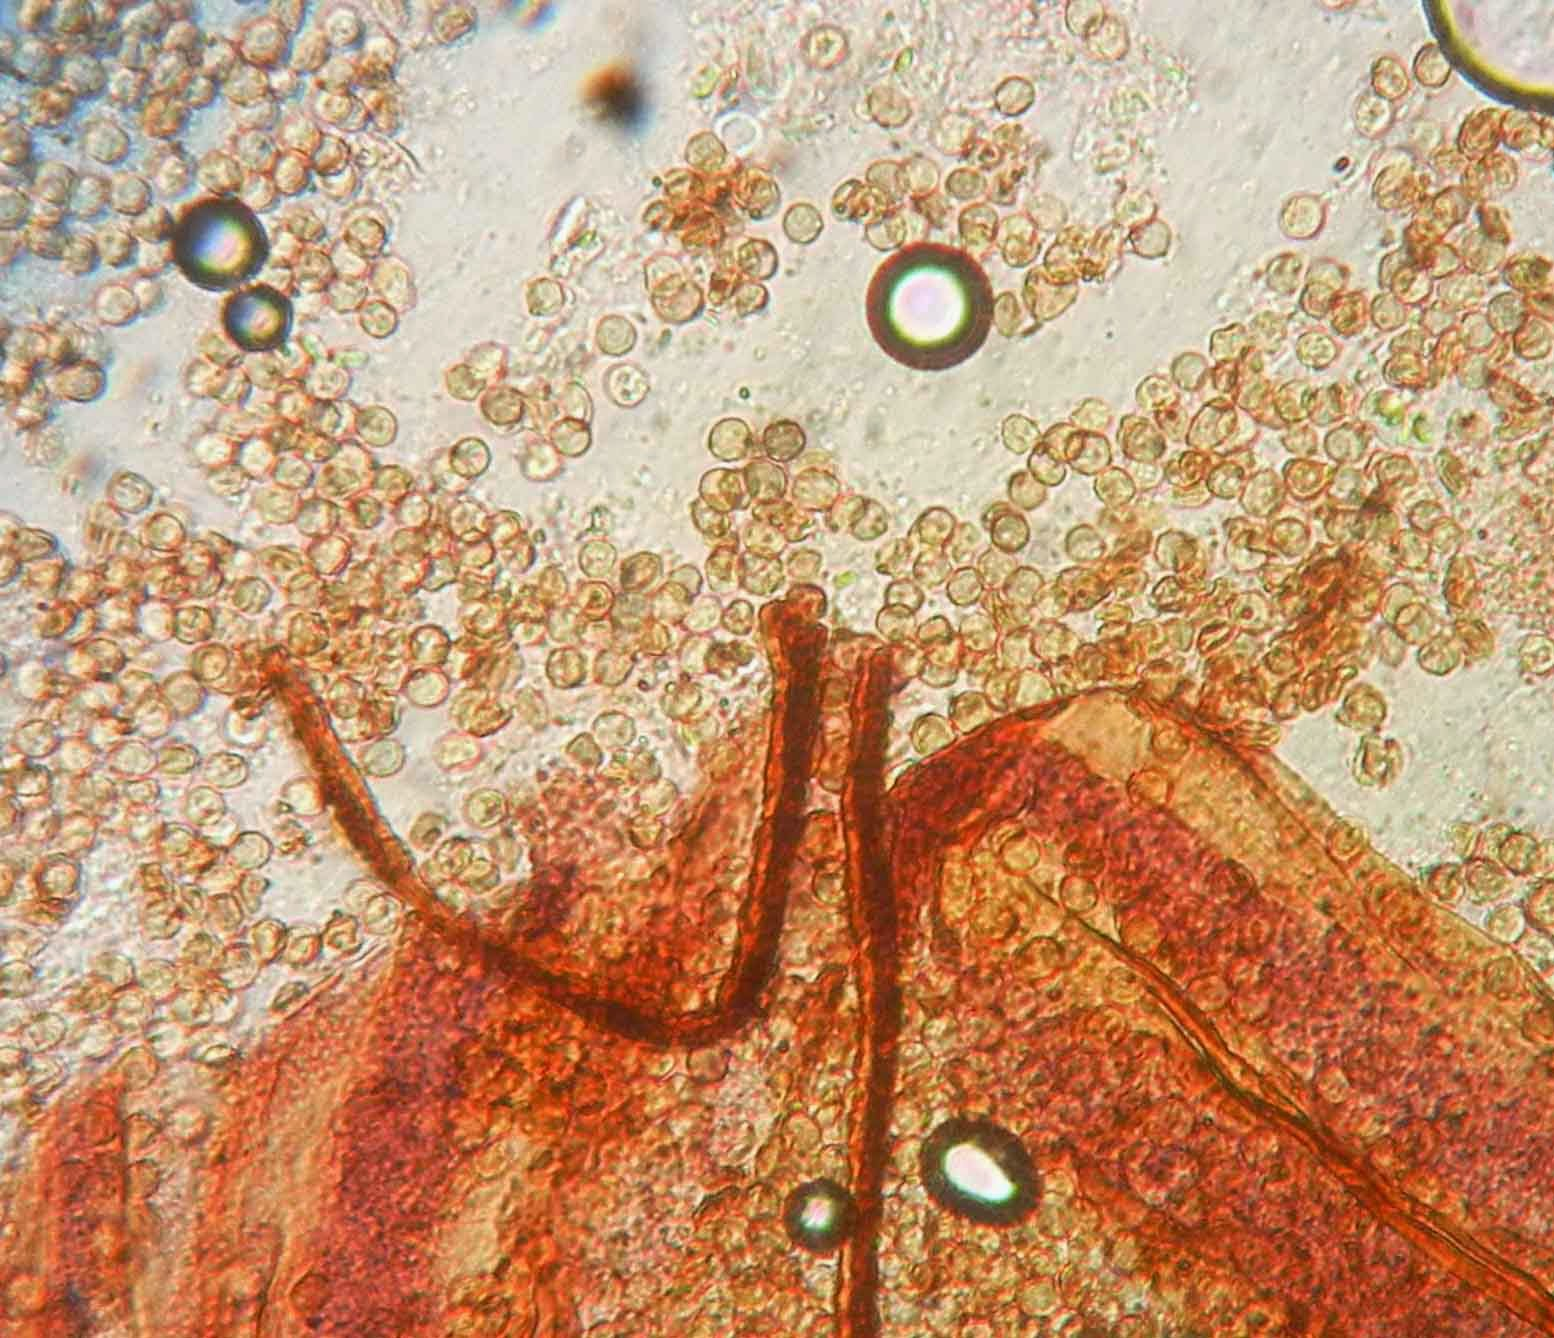 Cribraria cancellata spores and peridium